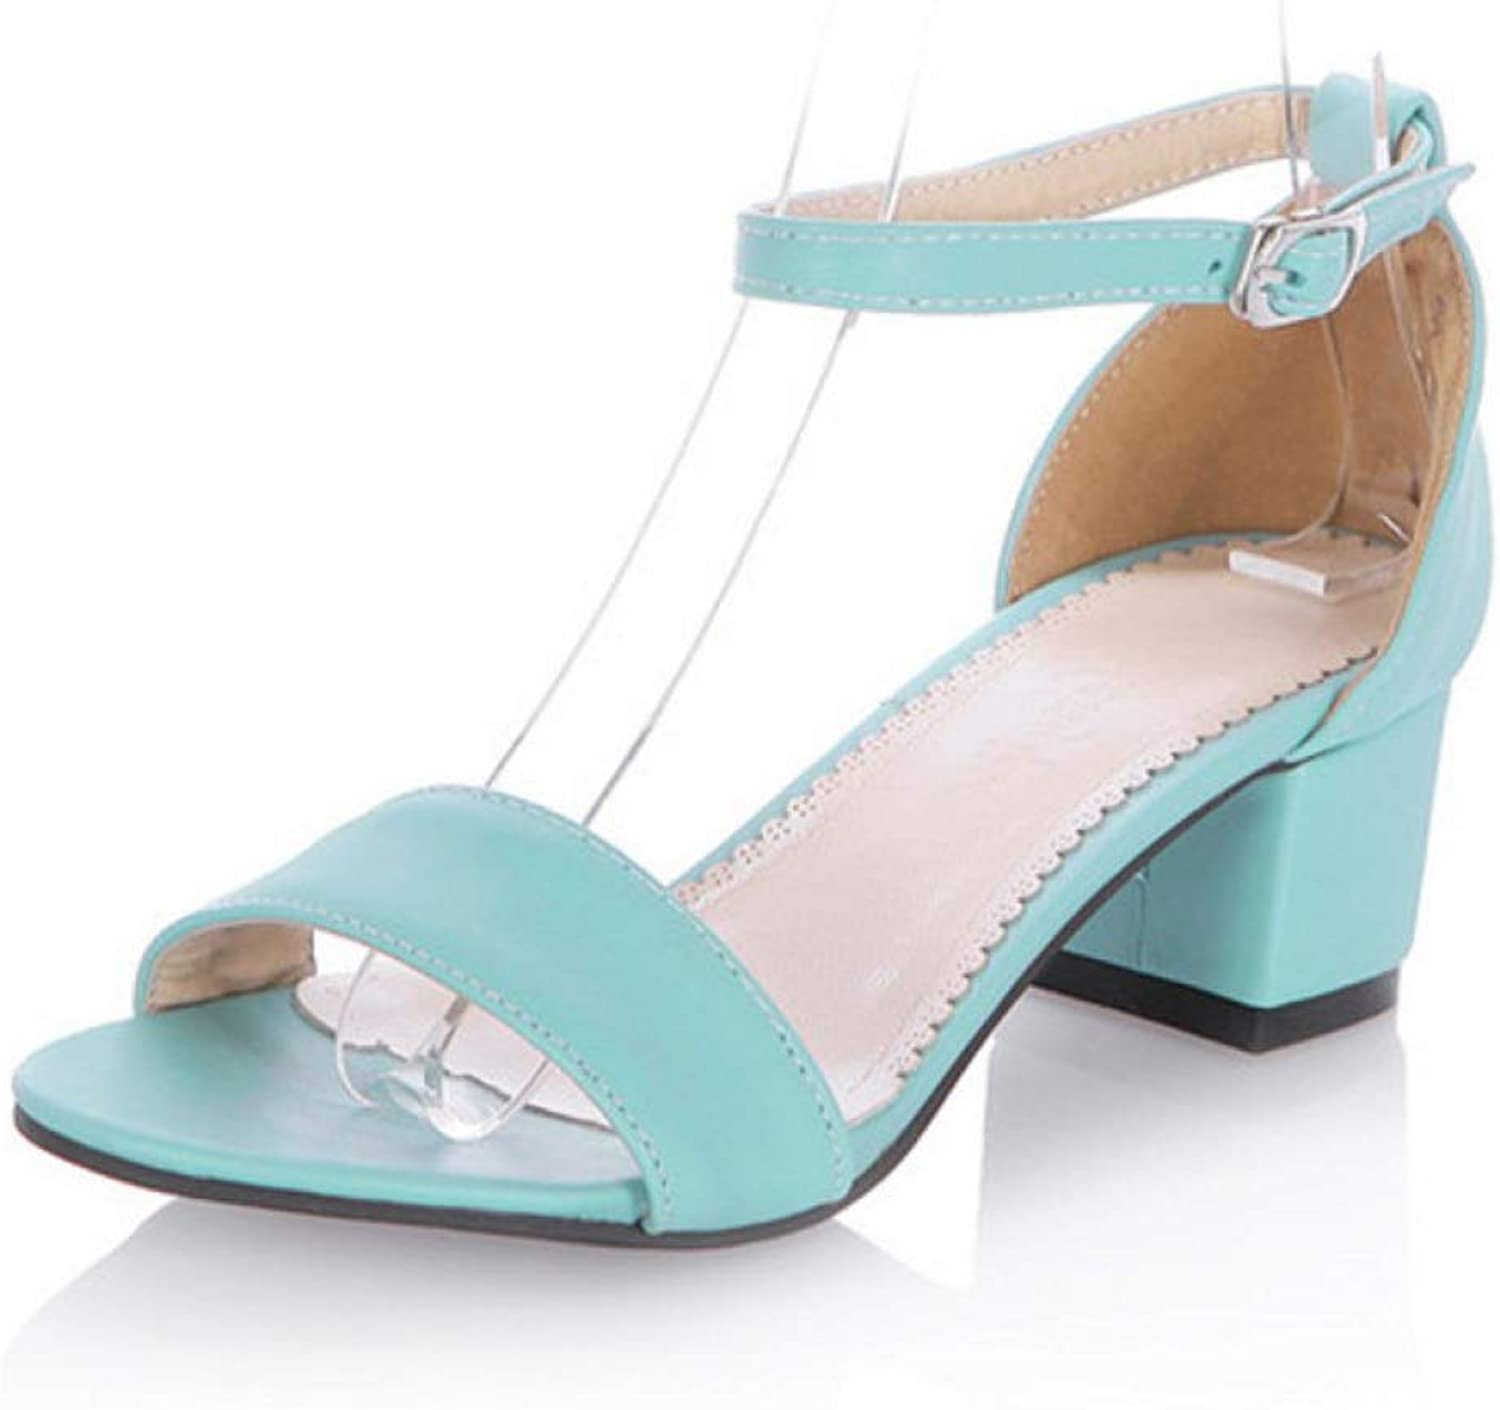 T-JULY Ladies Med Heels Sandals Summer shoes Women Ankle Strap Party Dress Sandals Solid Open Toe Women's Stiletto Heels